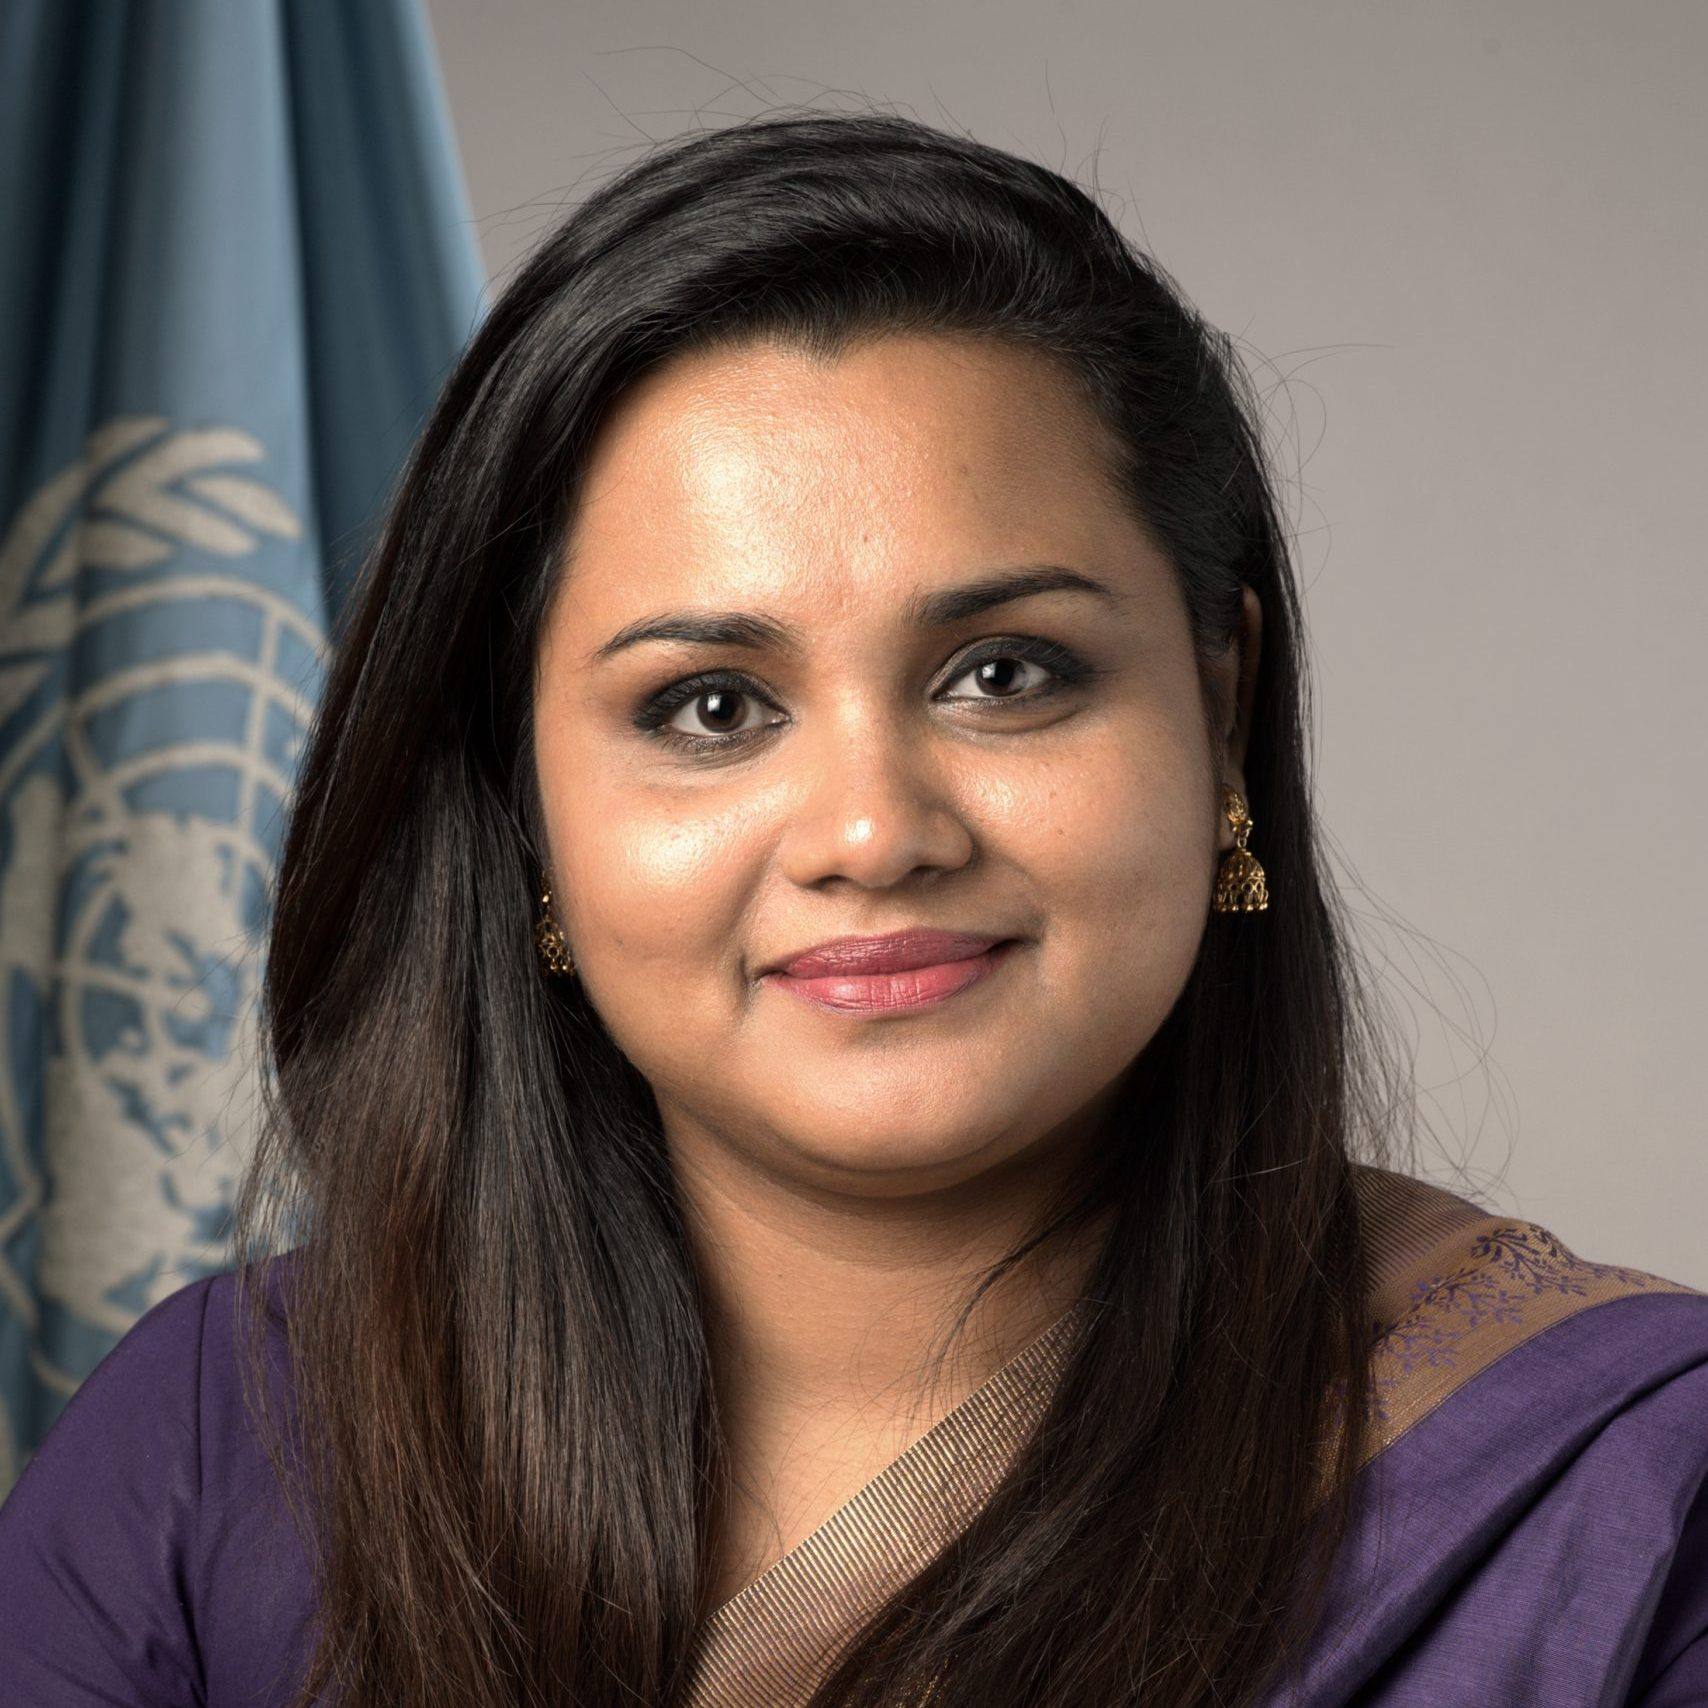 Portrait of Jayathma Wickramanayake, Youth Envoy.